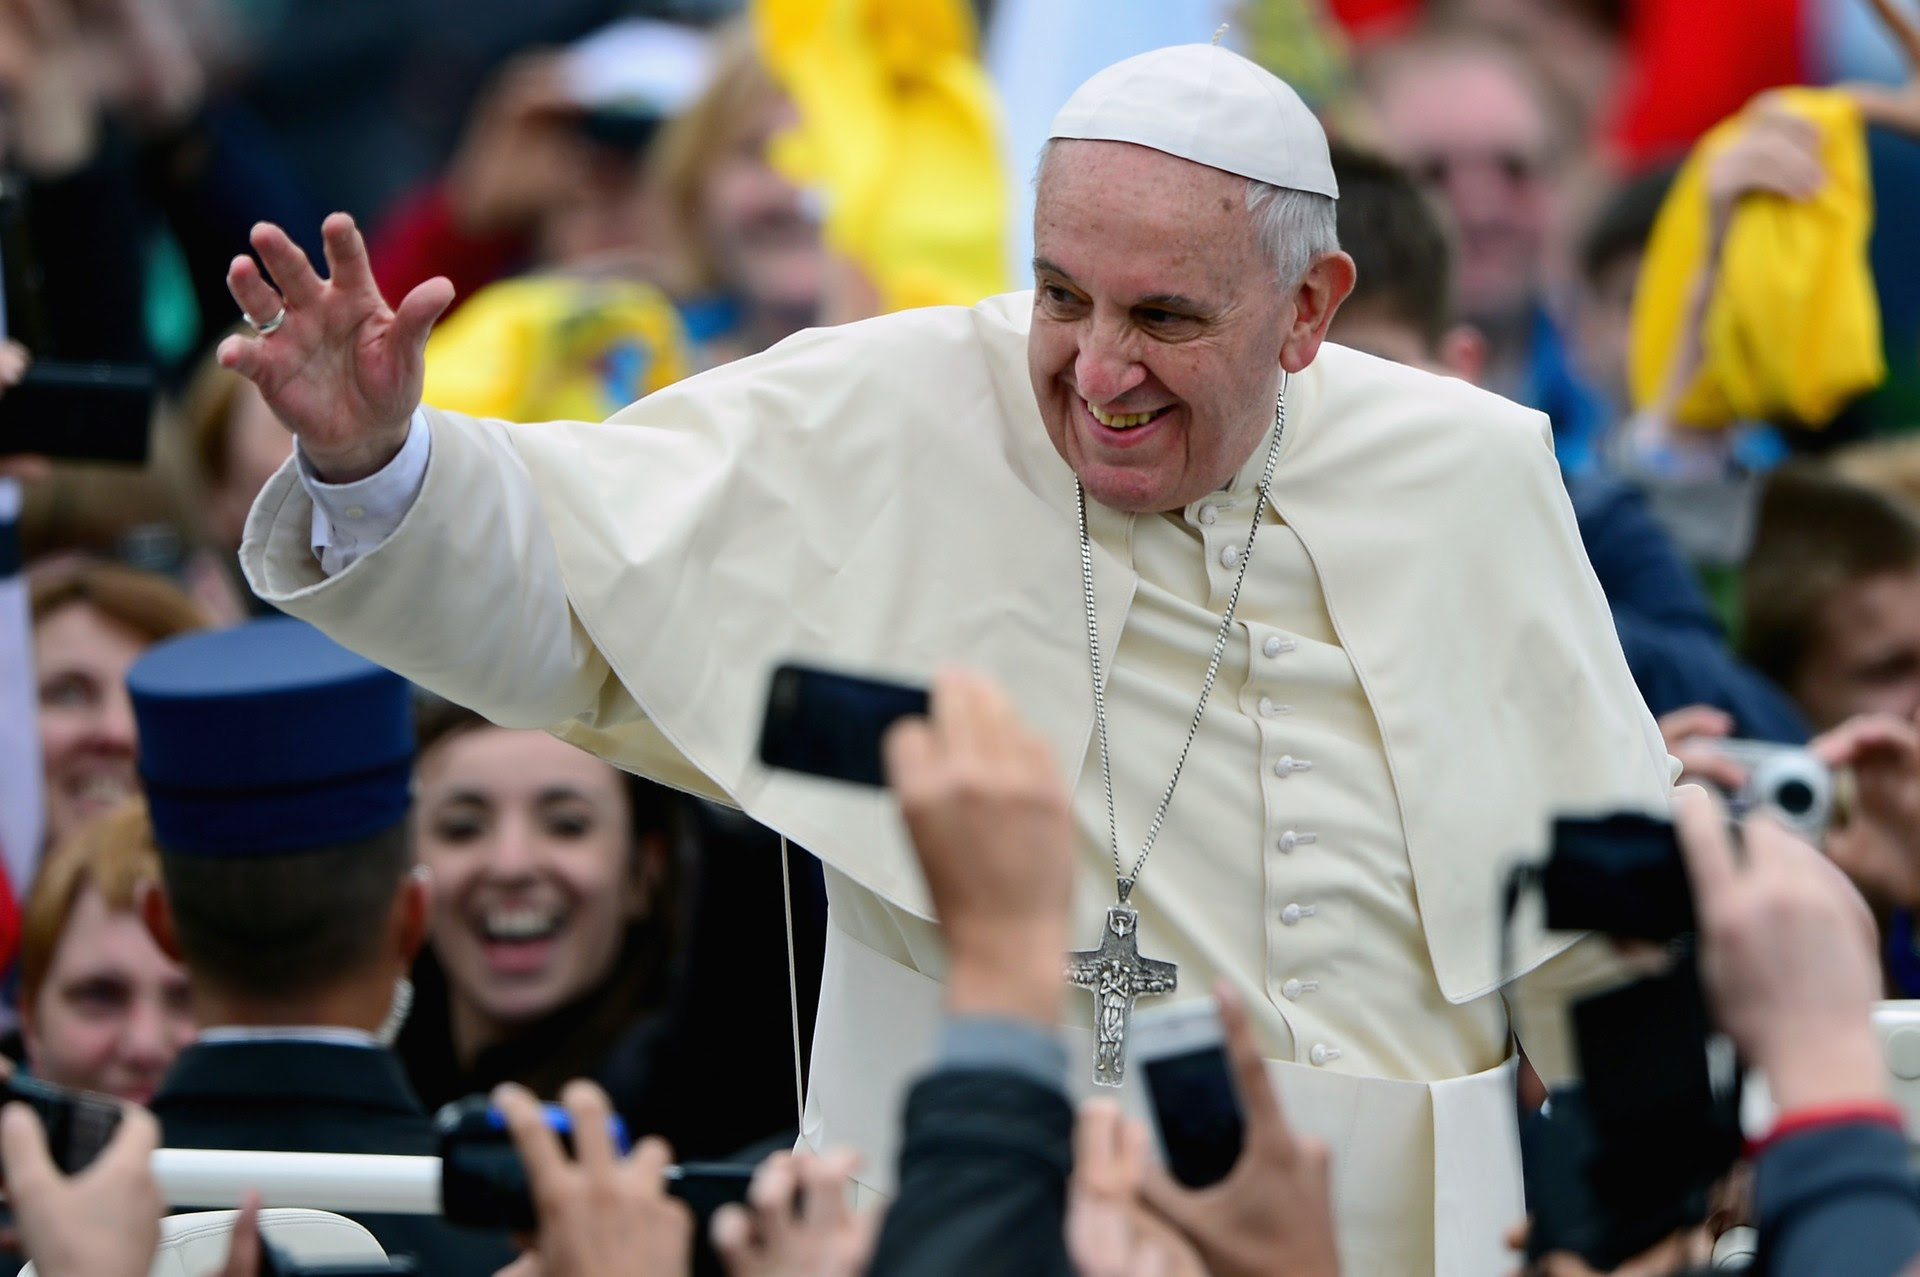 O Papa Francisco (Foto: getty)